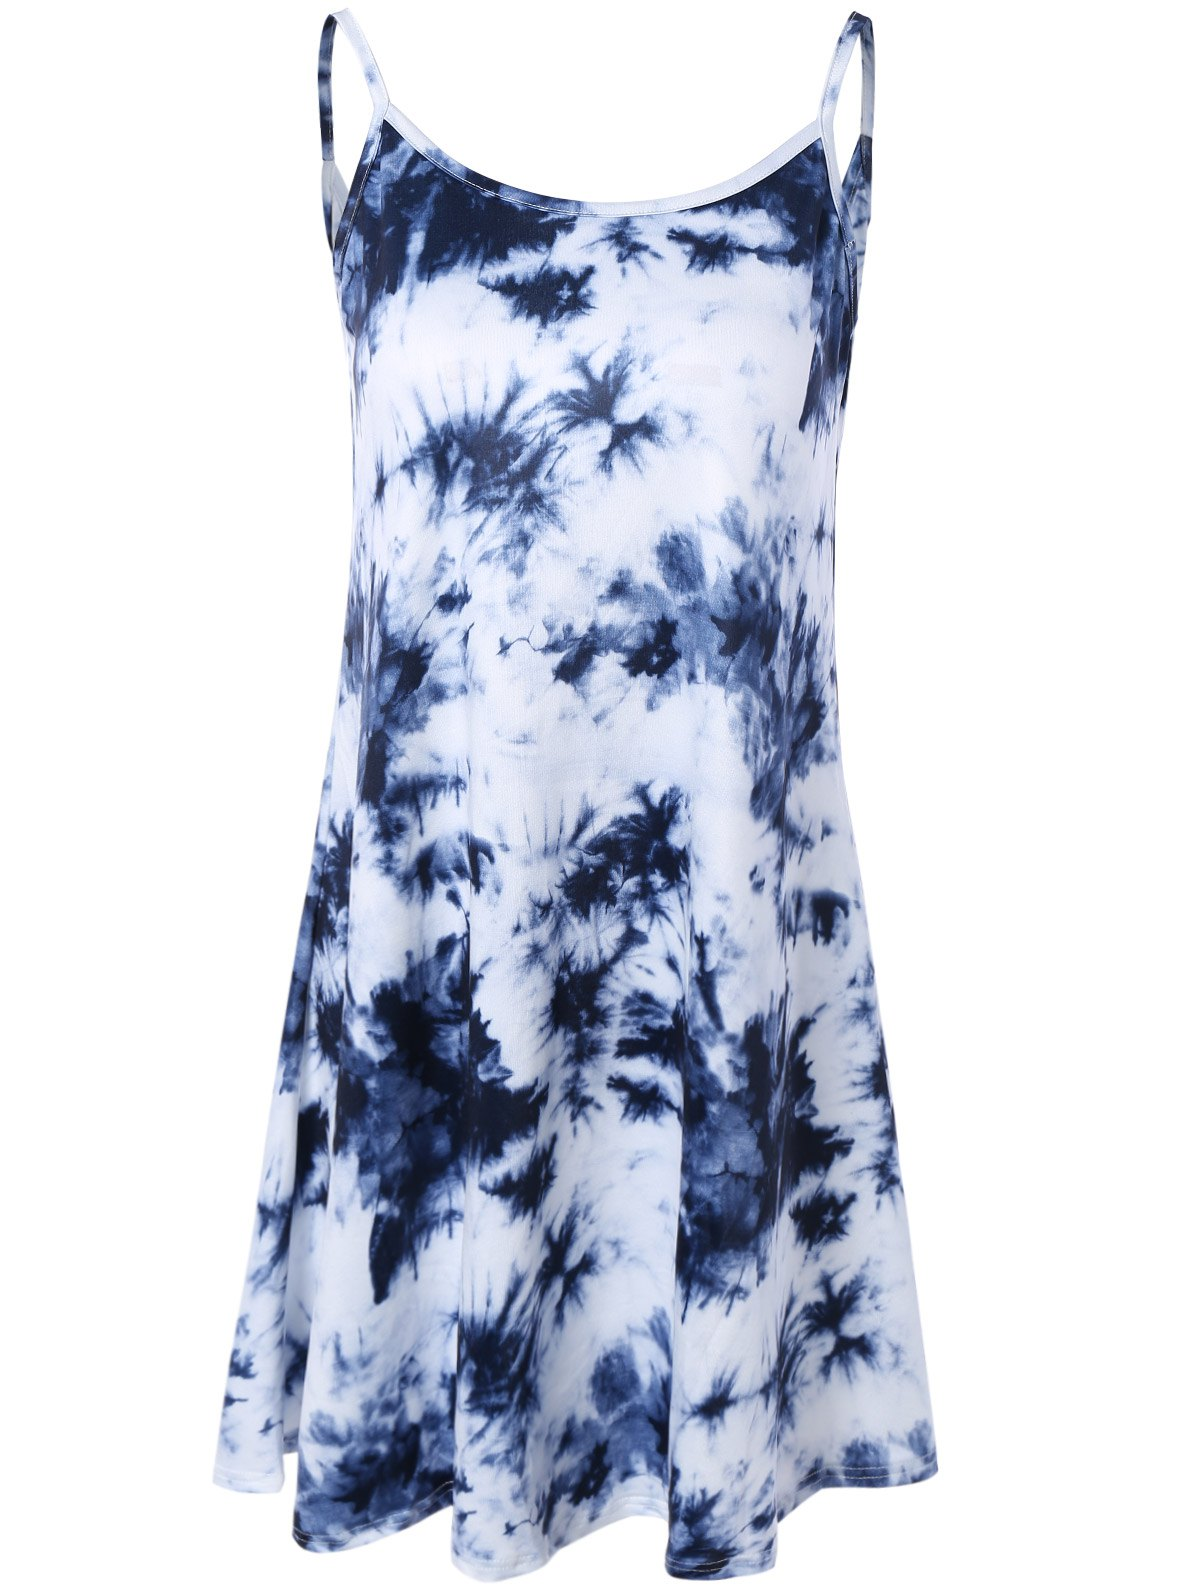 Refreshing Women's Tie-Dyed Open Back Summer Dress - DEEP BLUE 3XL